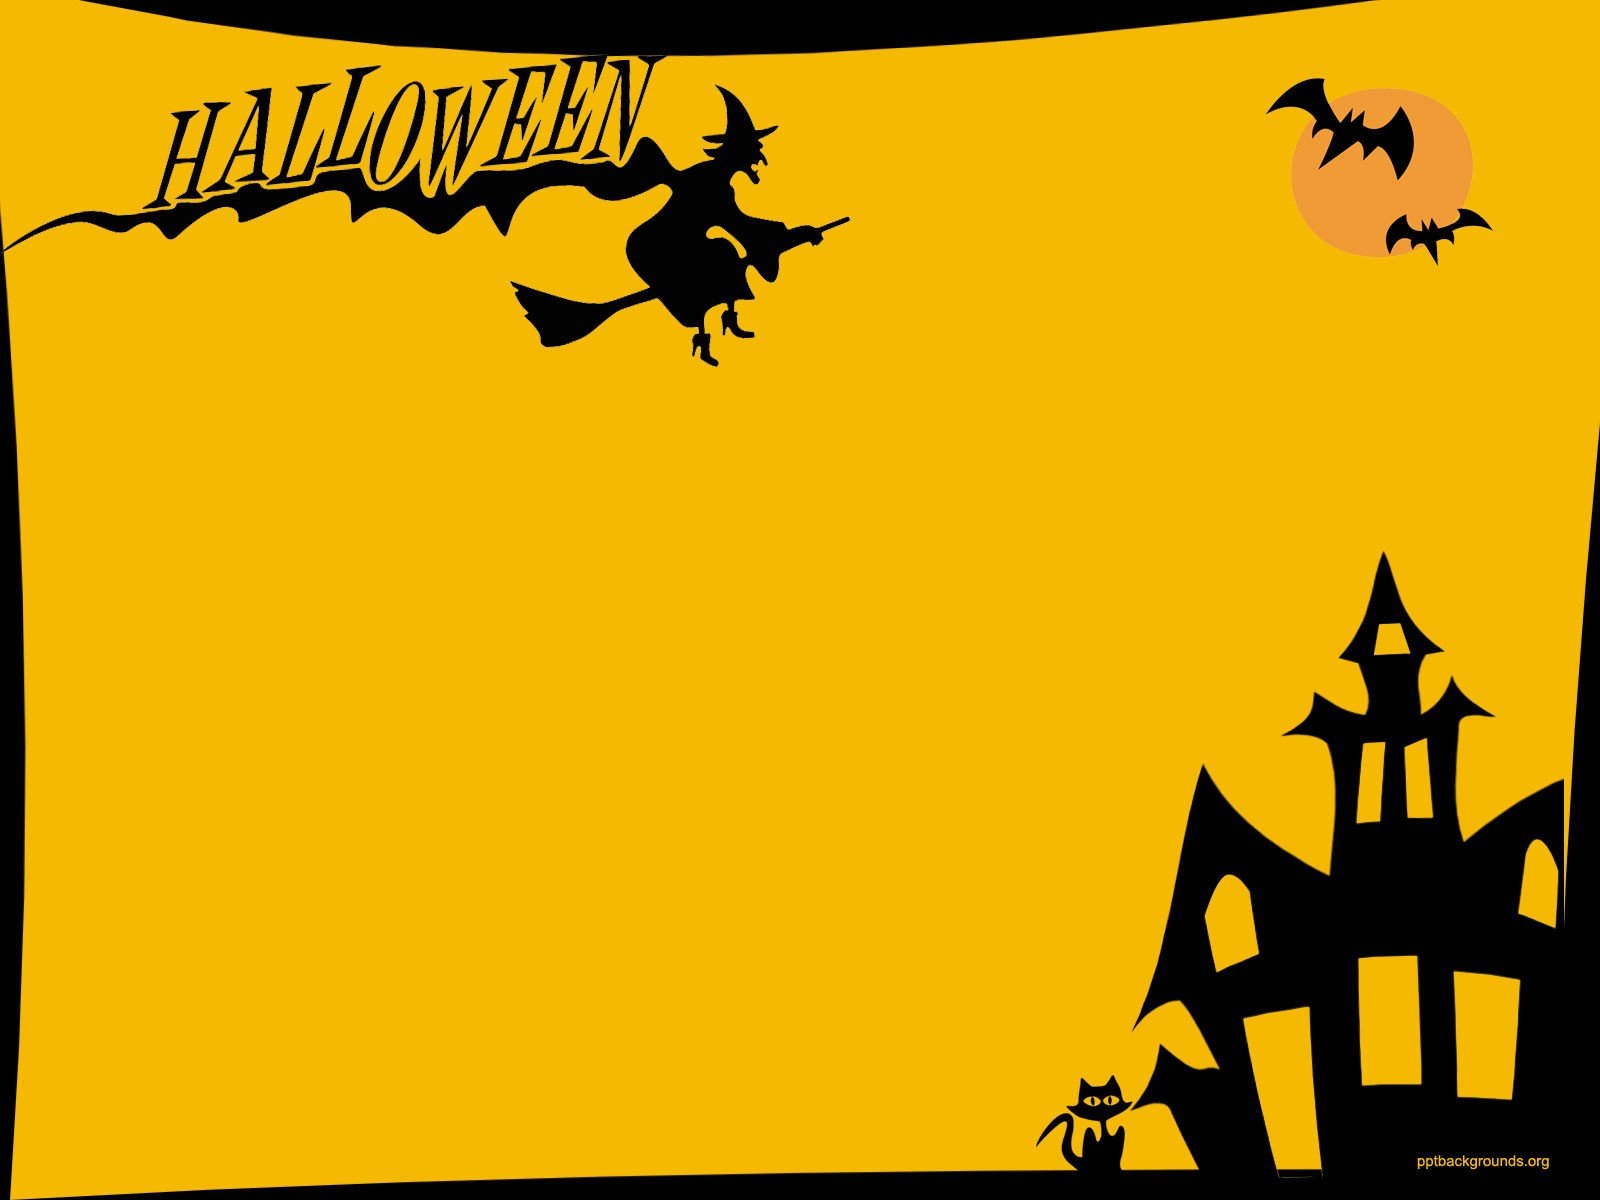 Halloween Power Point Templates Halloween Backgrounds for Powerpoint – Festival Collections